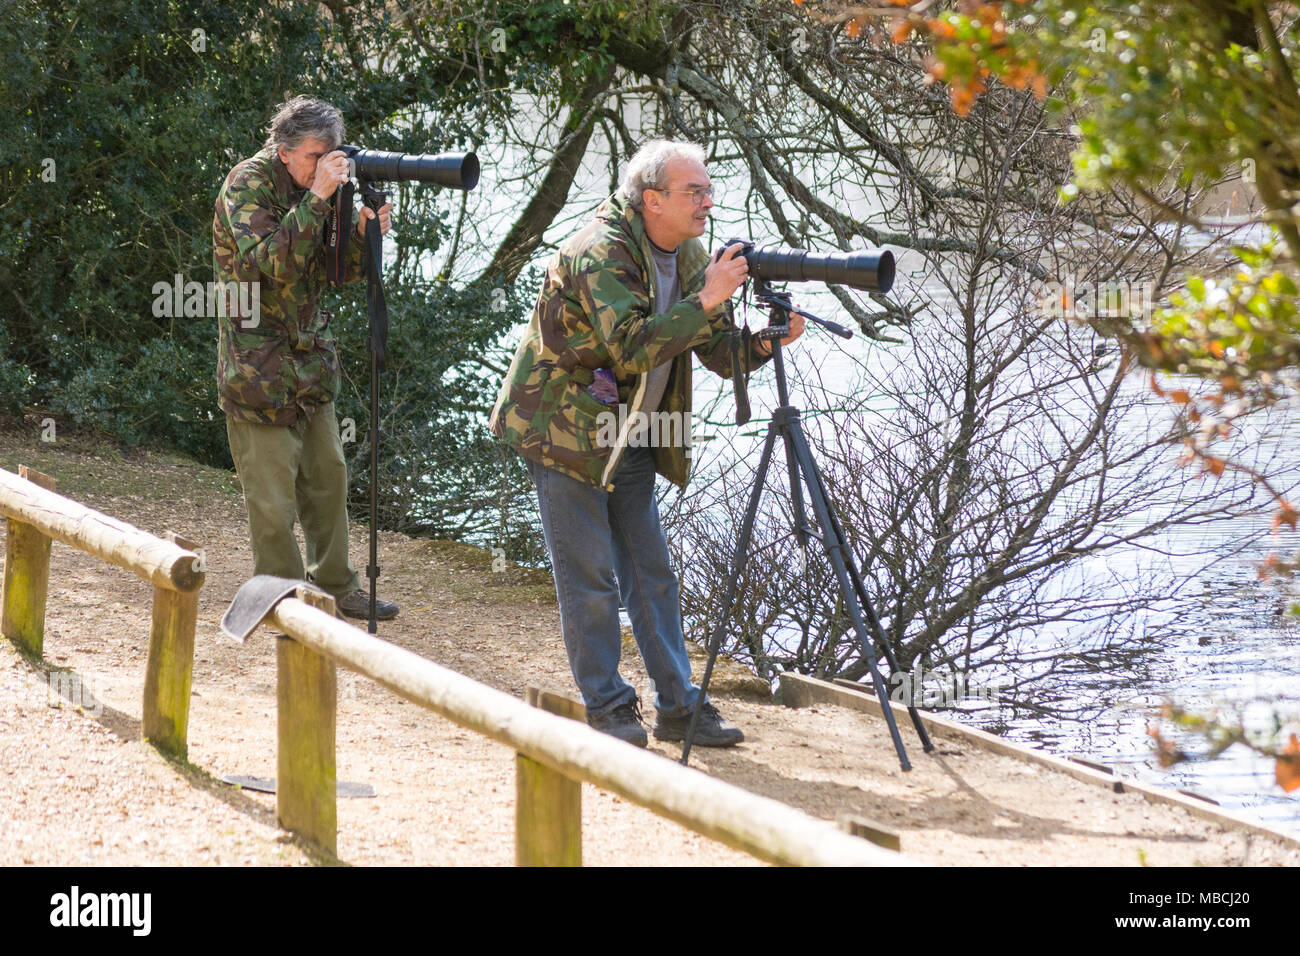 Birdwatchers with cameras and long lenses on tripods waiting patiently to take bird photographs next to Eyeworth Pond, Fritham, New Forest, Hampshire - Stock Image